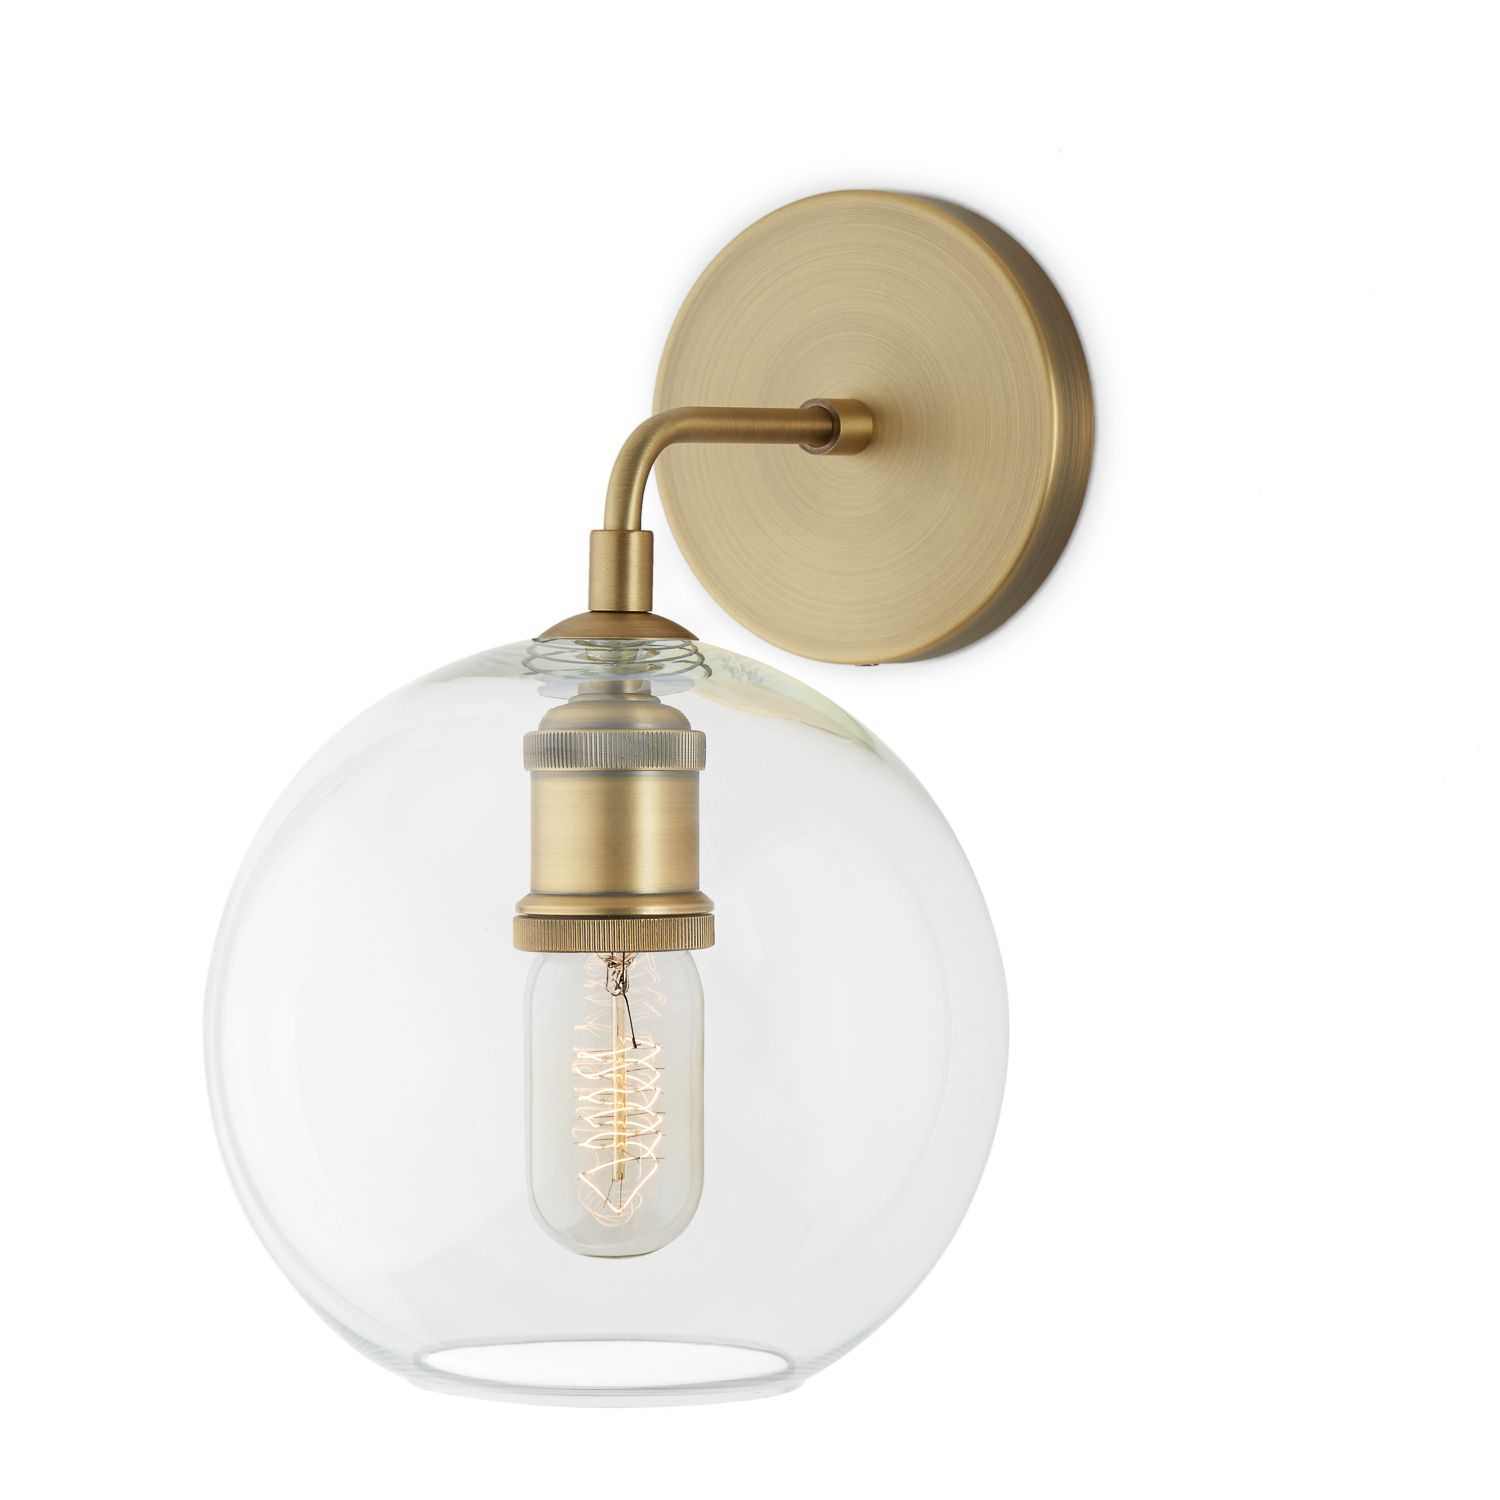 designsolutions inspirational ikea simple metalorgtfo gallery of luxury sconce wall com cool usa